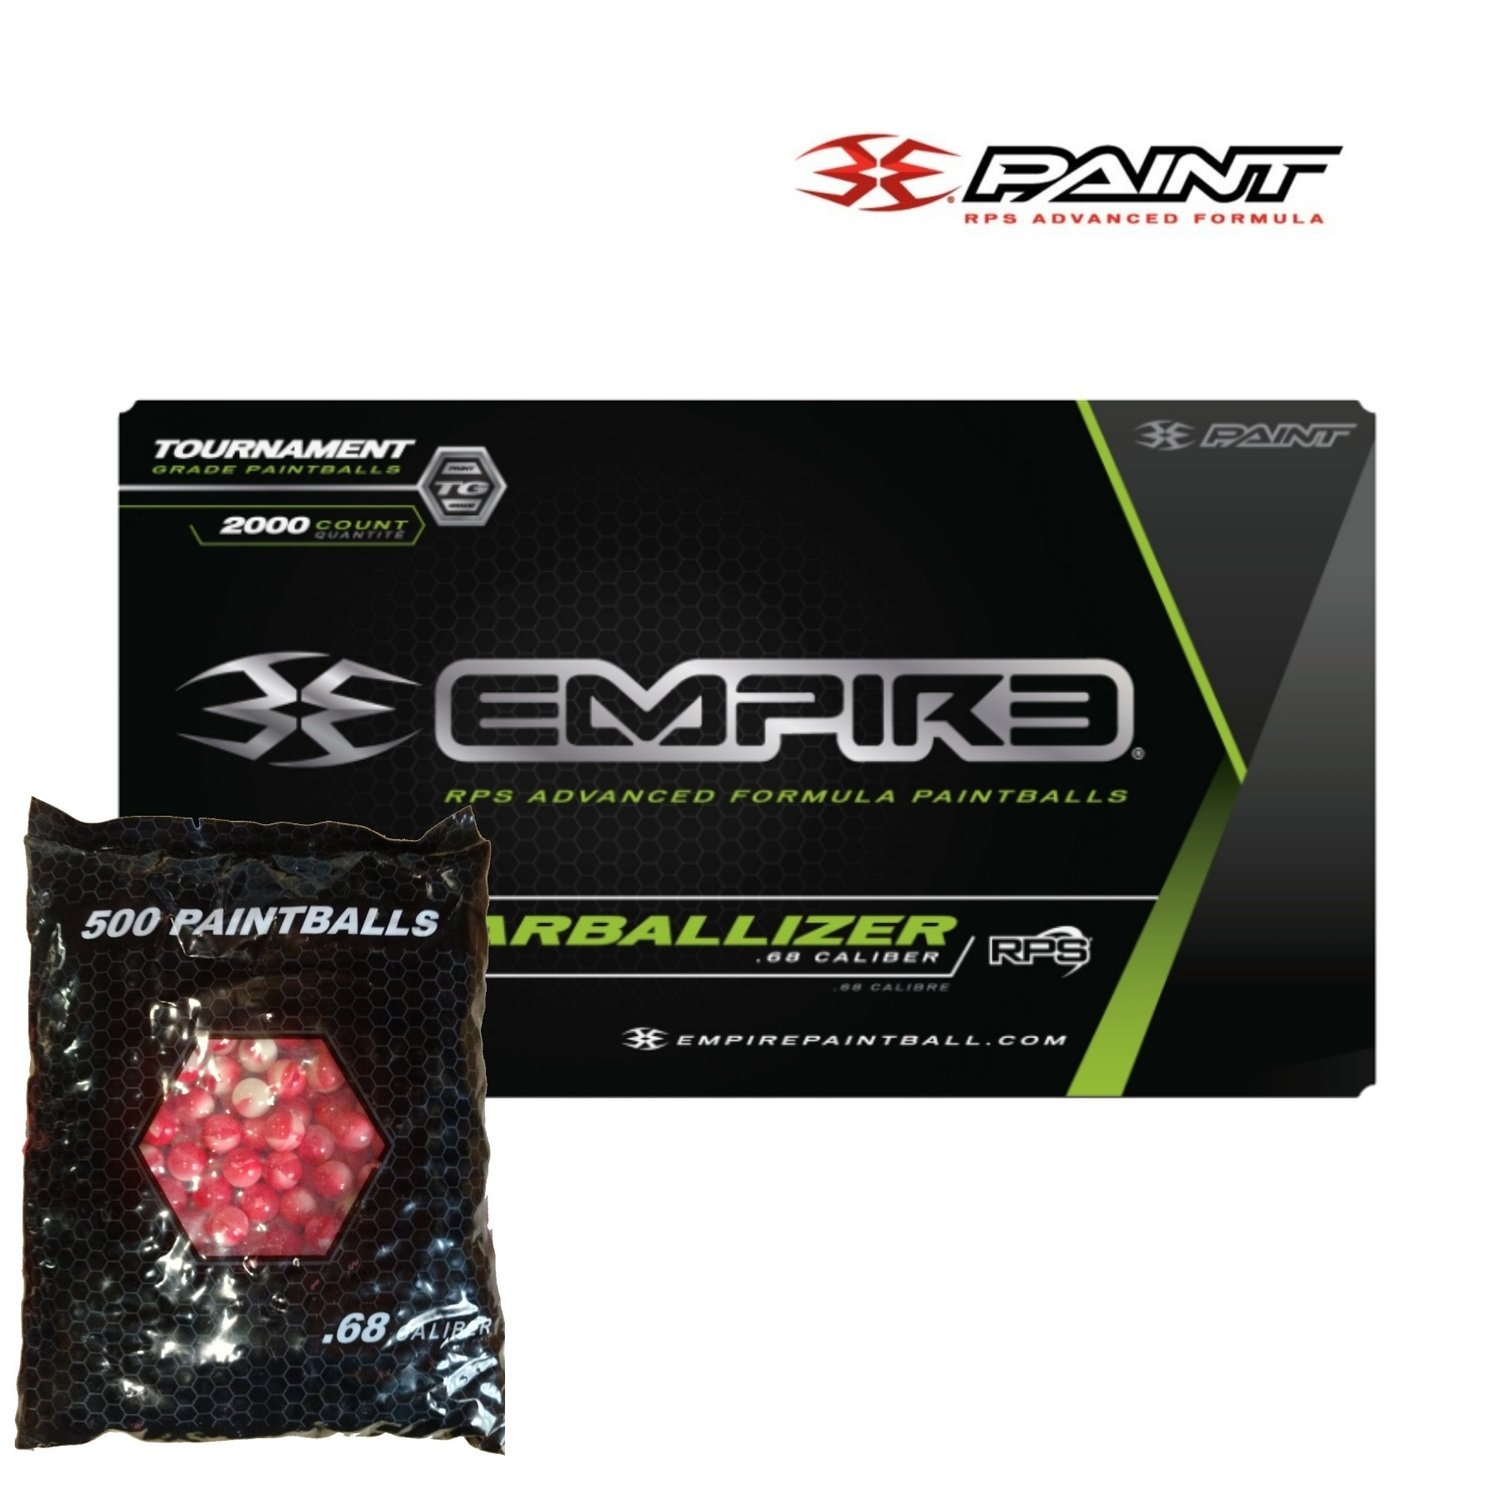 Empire Marballizer .68 cal Paintballs - Case of 2000 Rds - Clear/Red Swirl Shell - White Fill